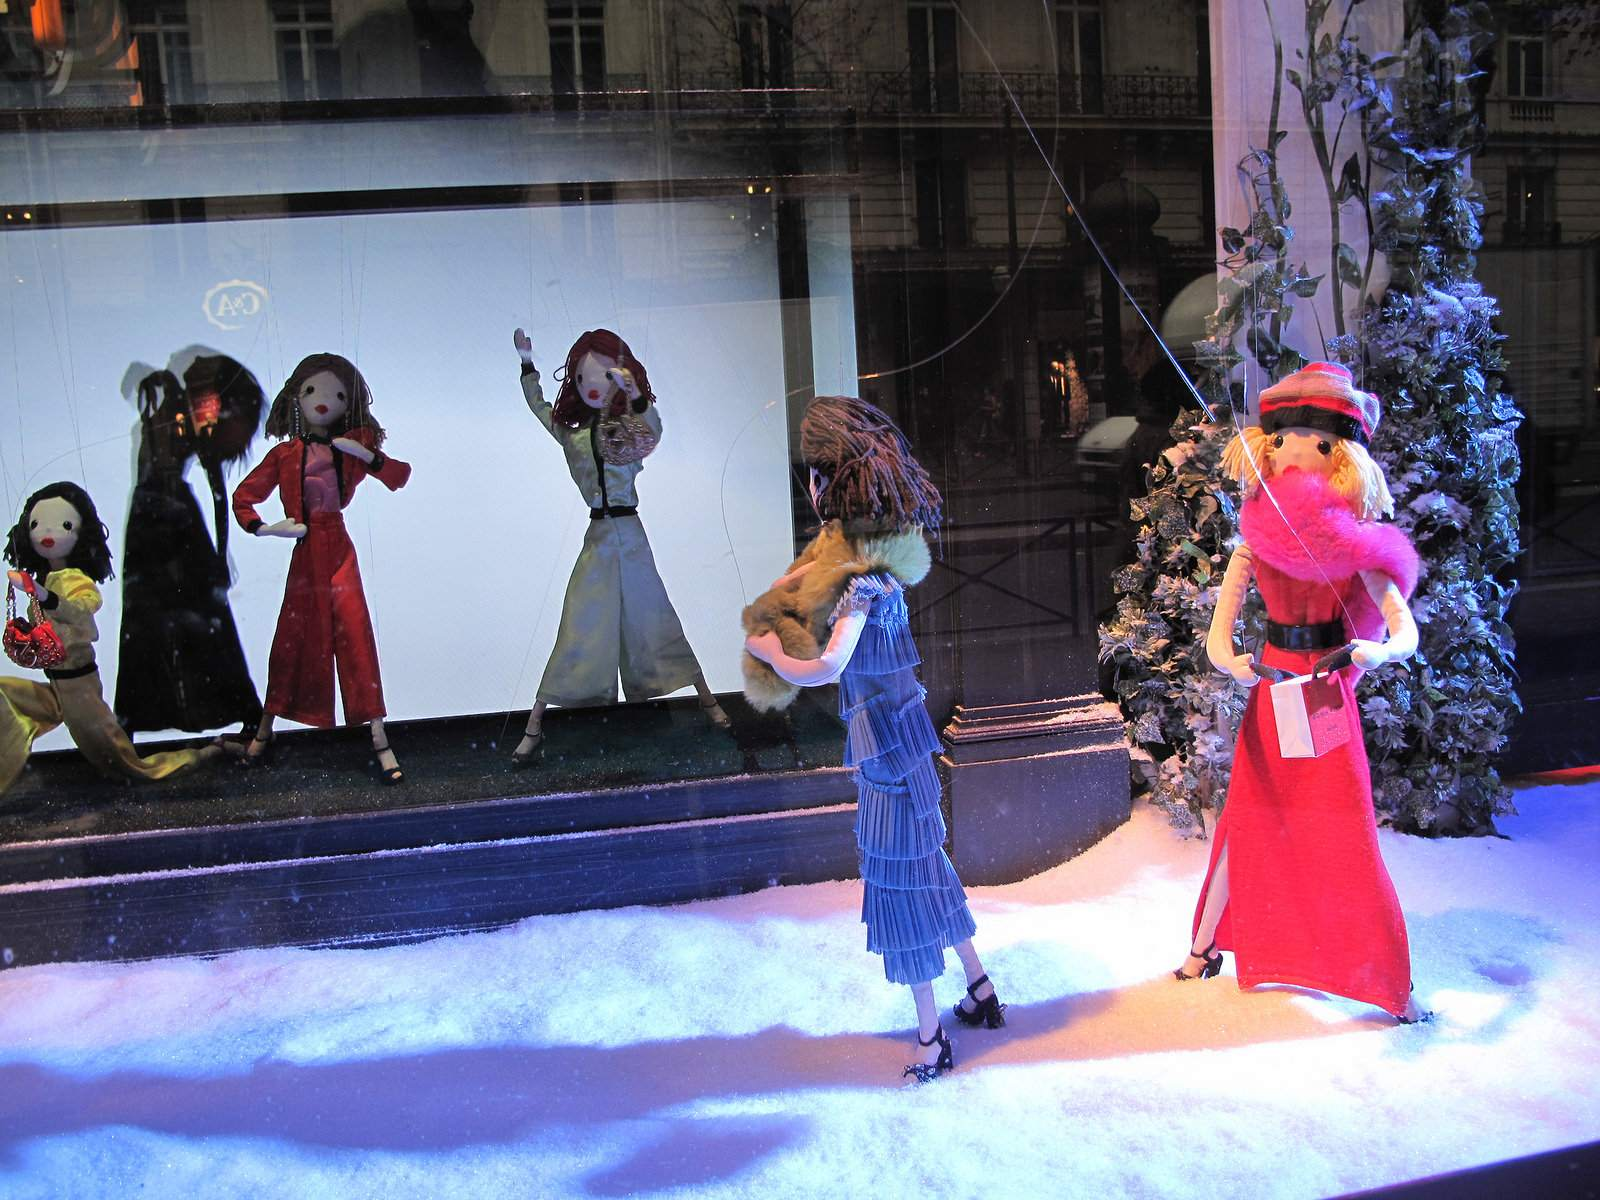 vitrines noel7 Christmas window displays in Paris